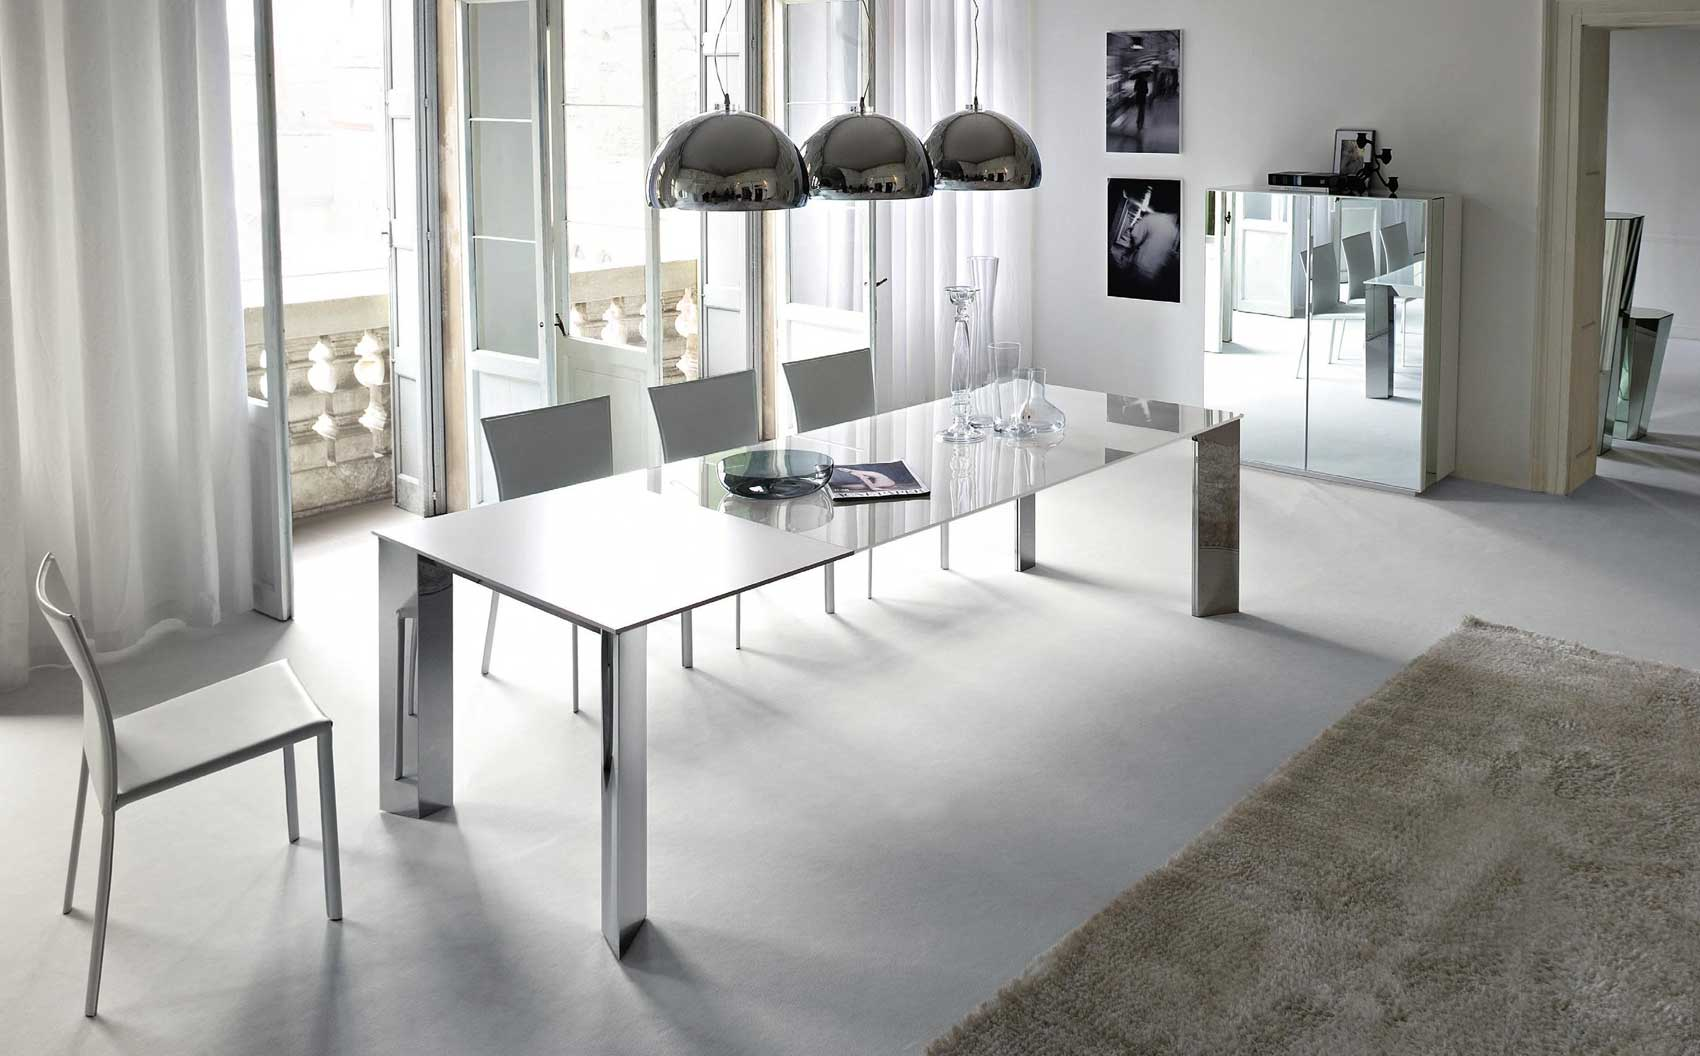 Image of: Dining Room with White Table